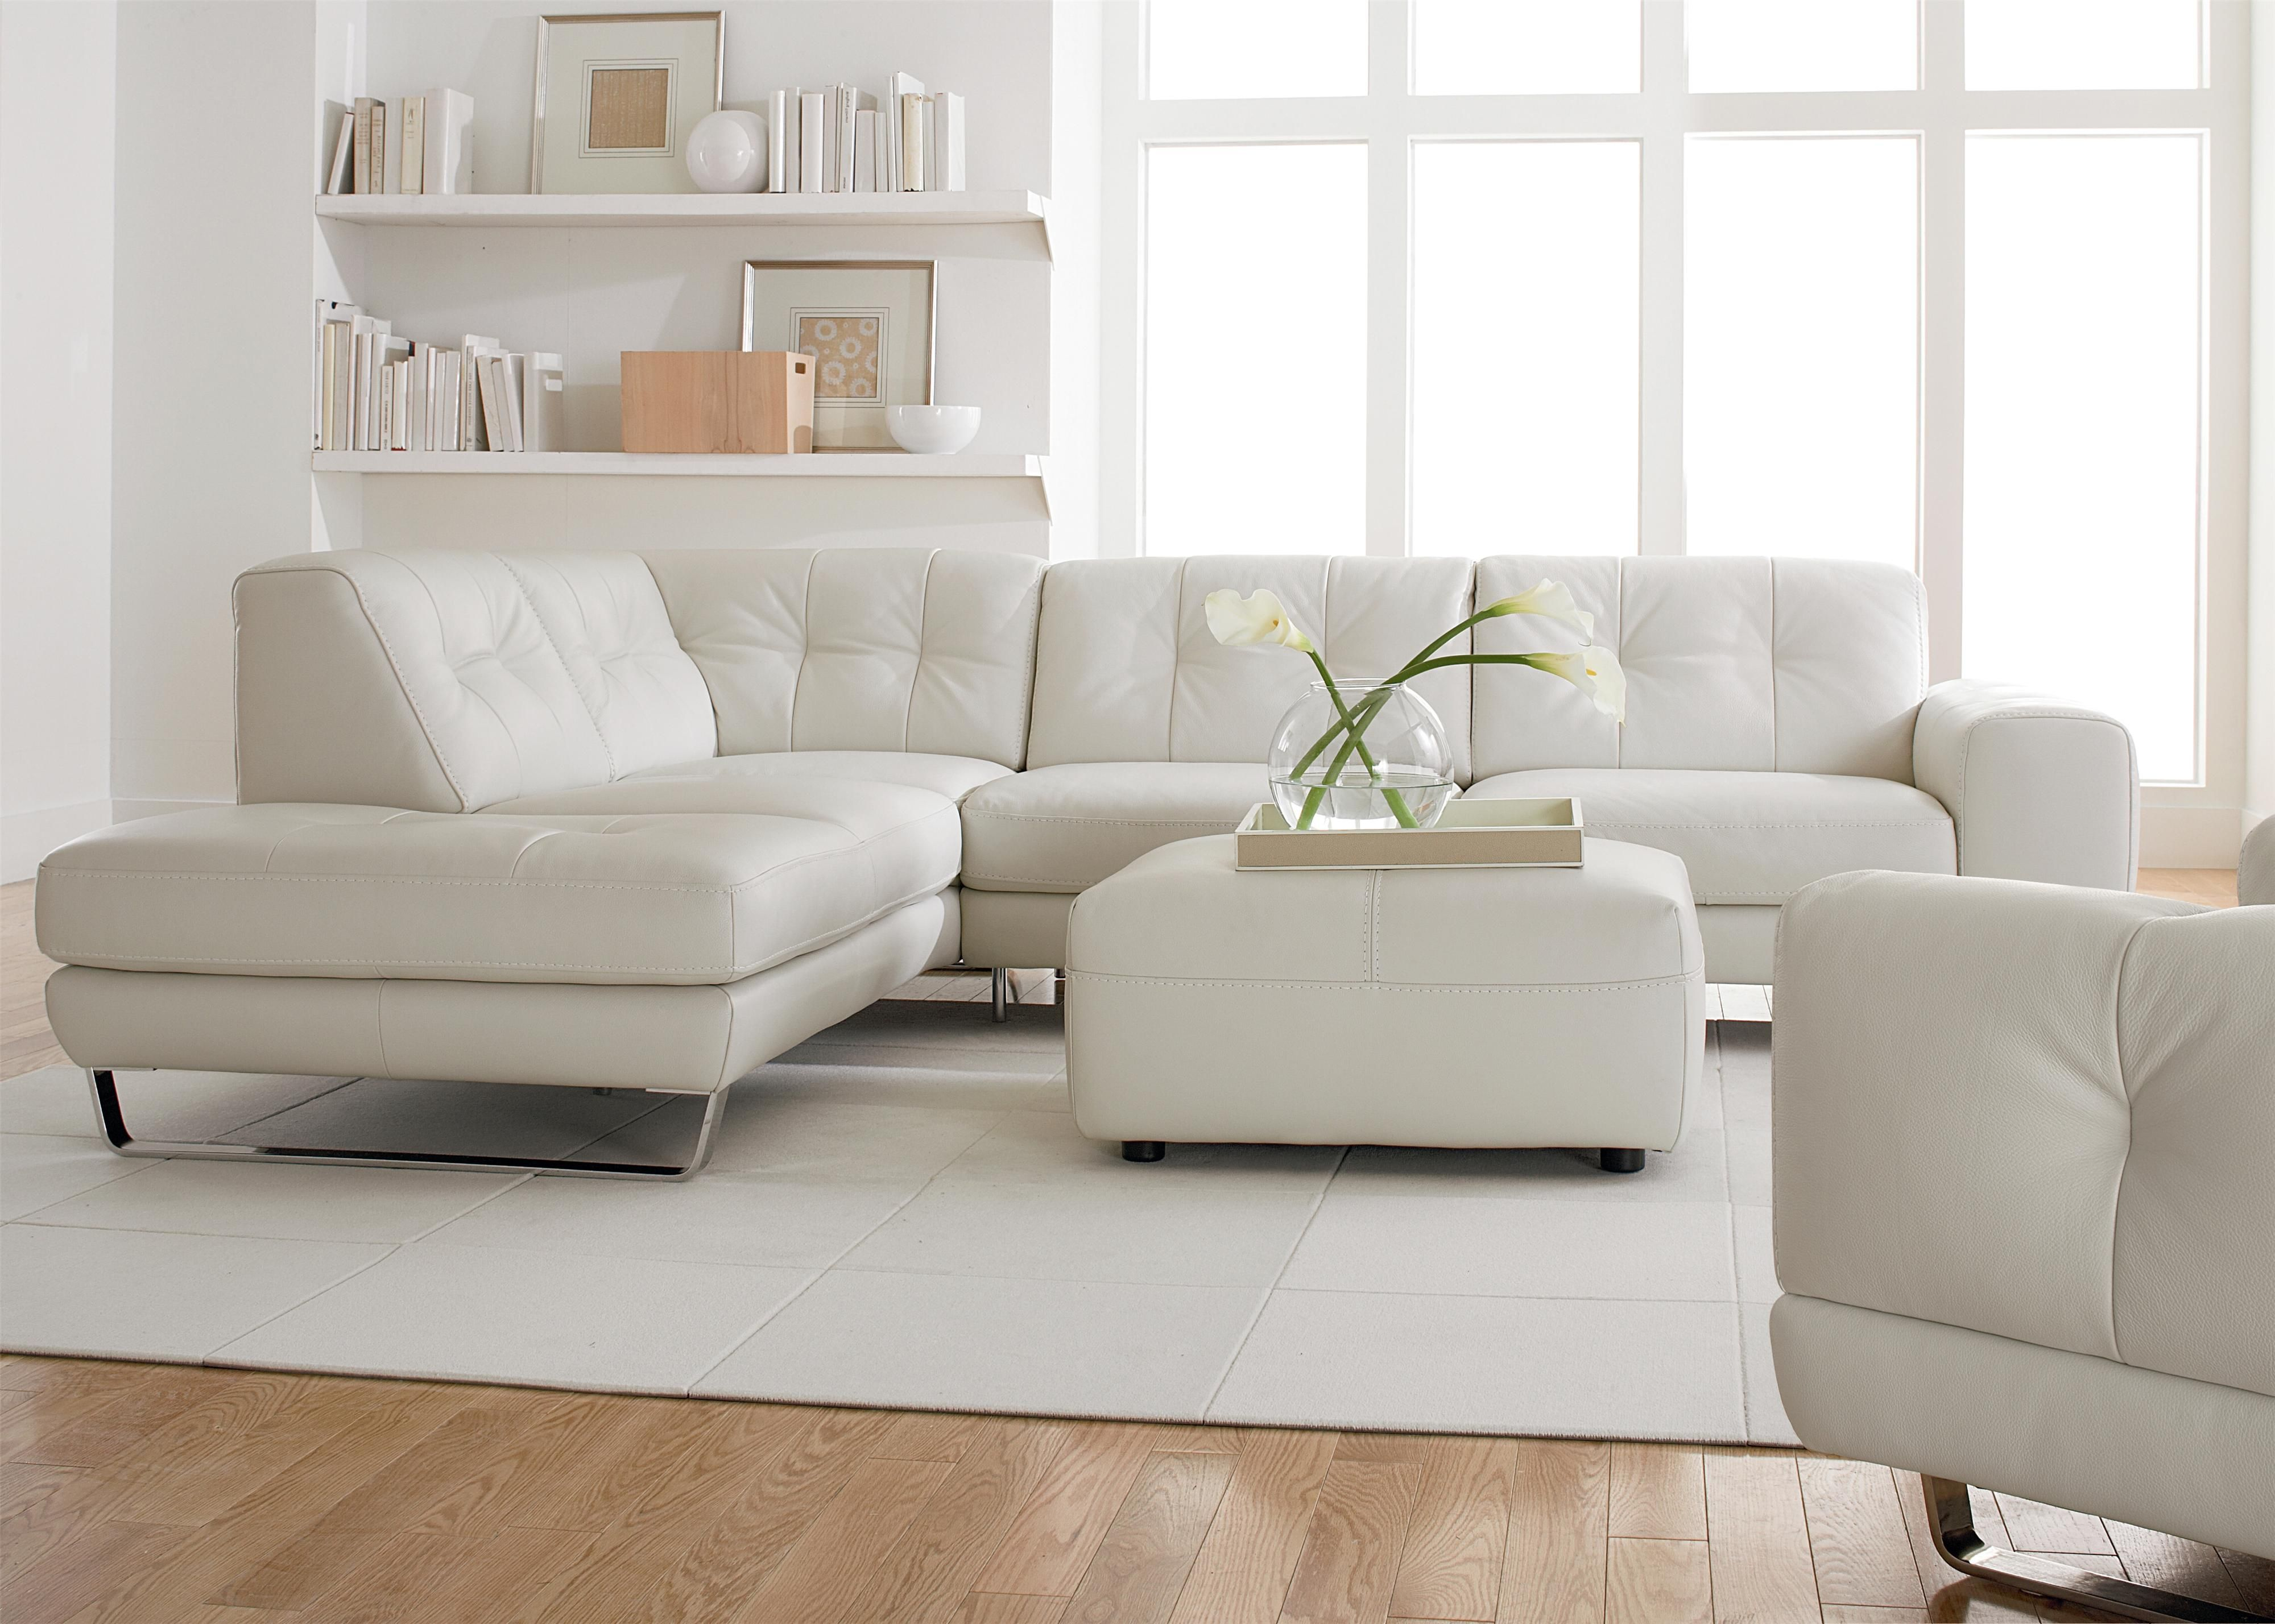 B636 Contemporary Tufted Leather Sectional With Ottoman Chaise By Natuzzi Editions